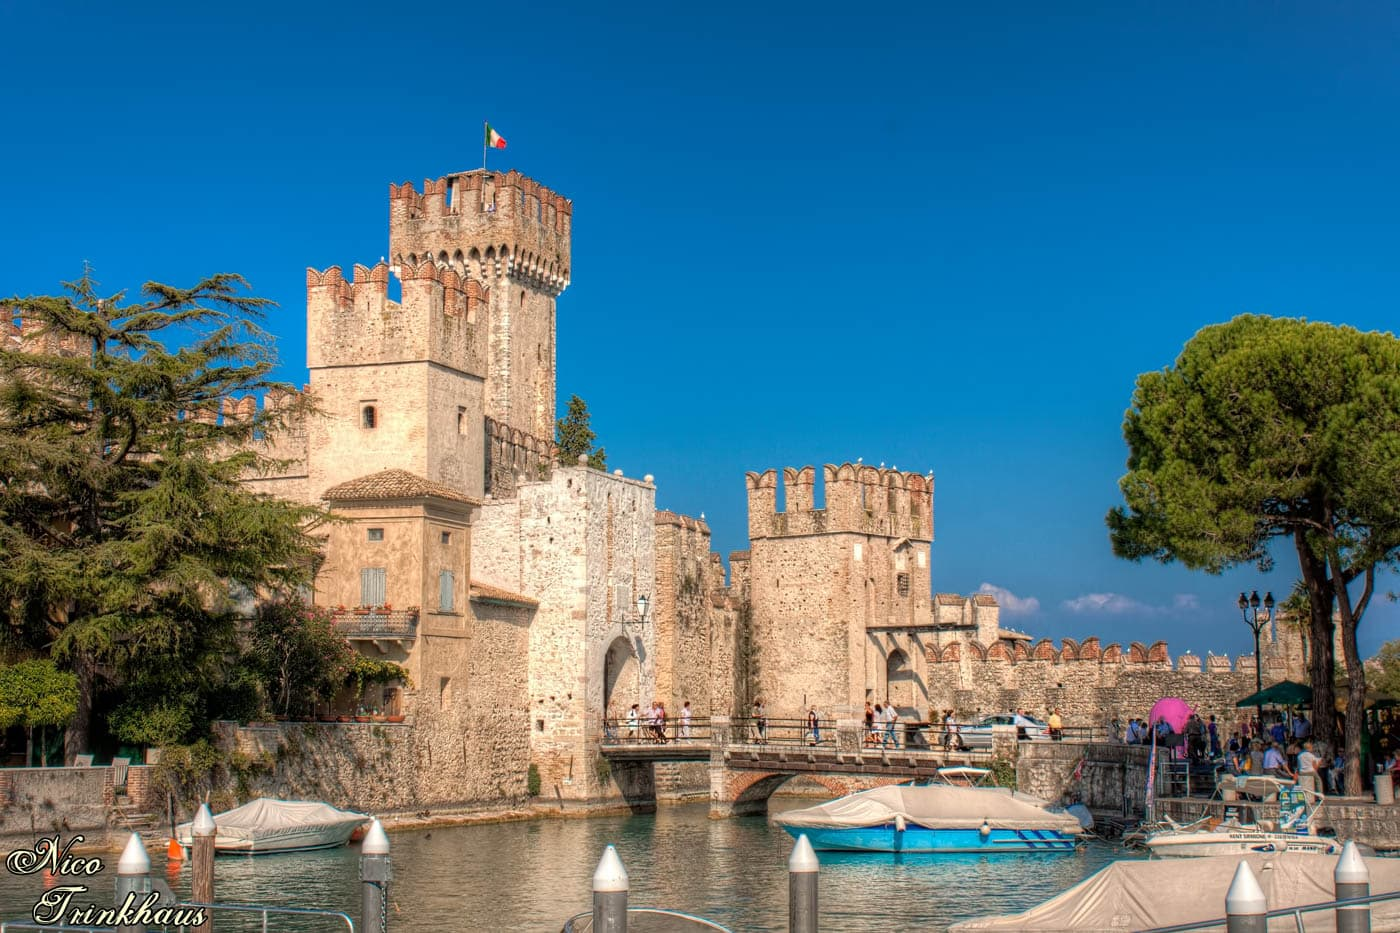 Entrance to Sirmione, Italy